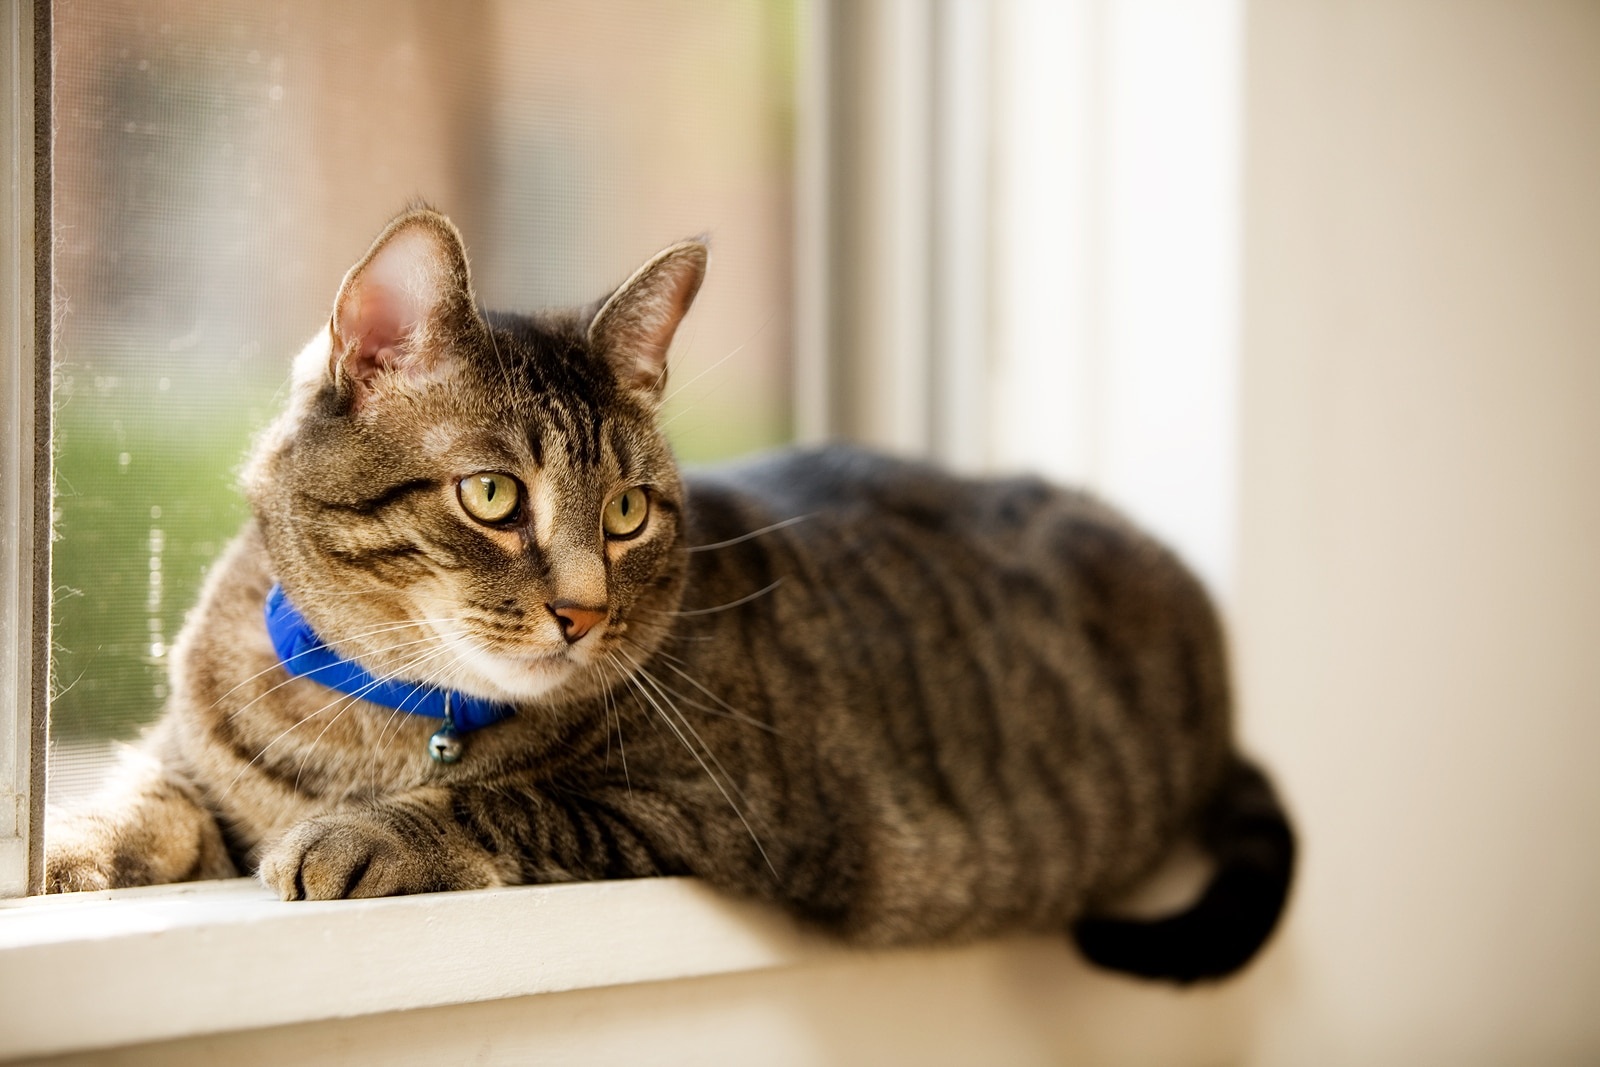 Pet tabby cat laying in a residential window. Shallow depth of field with focus on eyes.